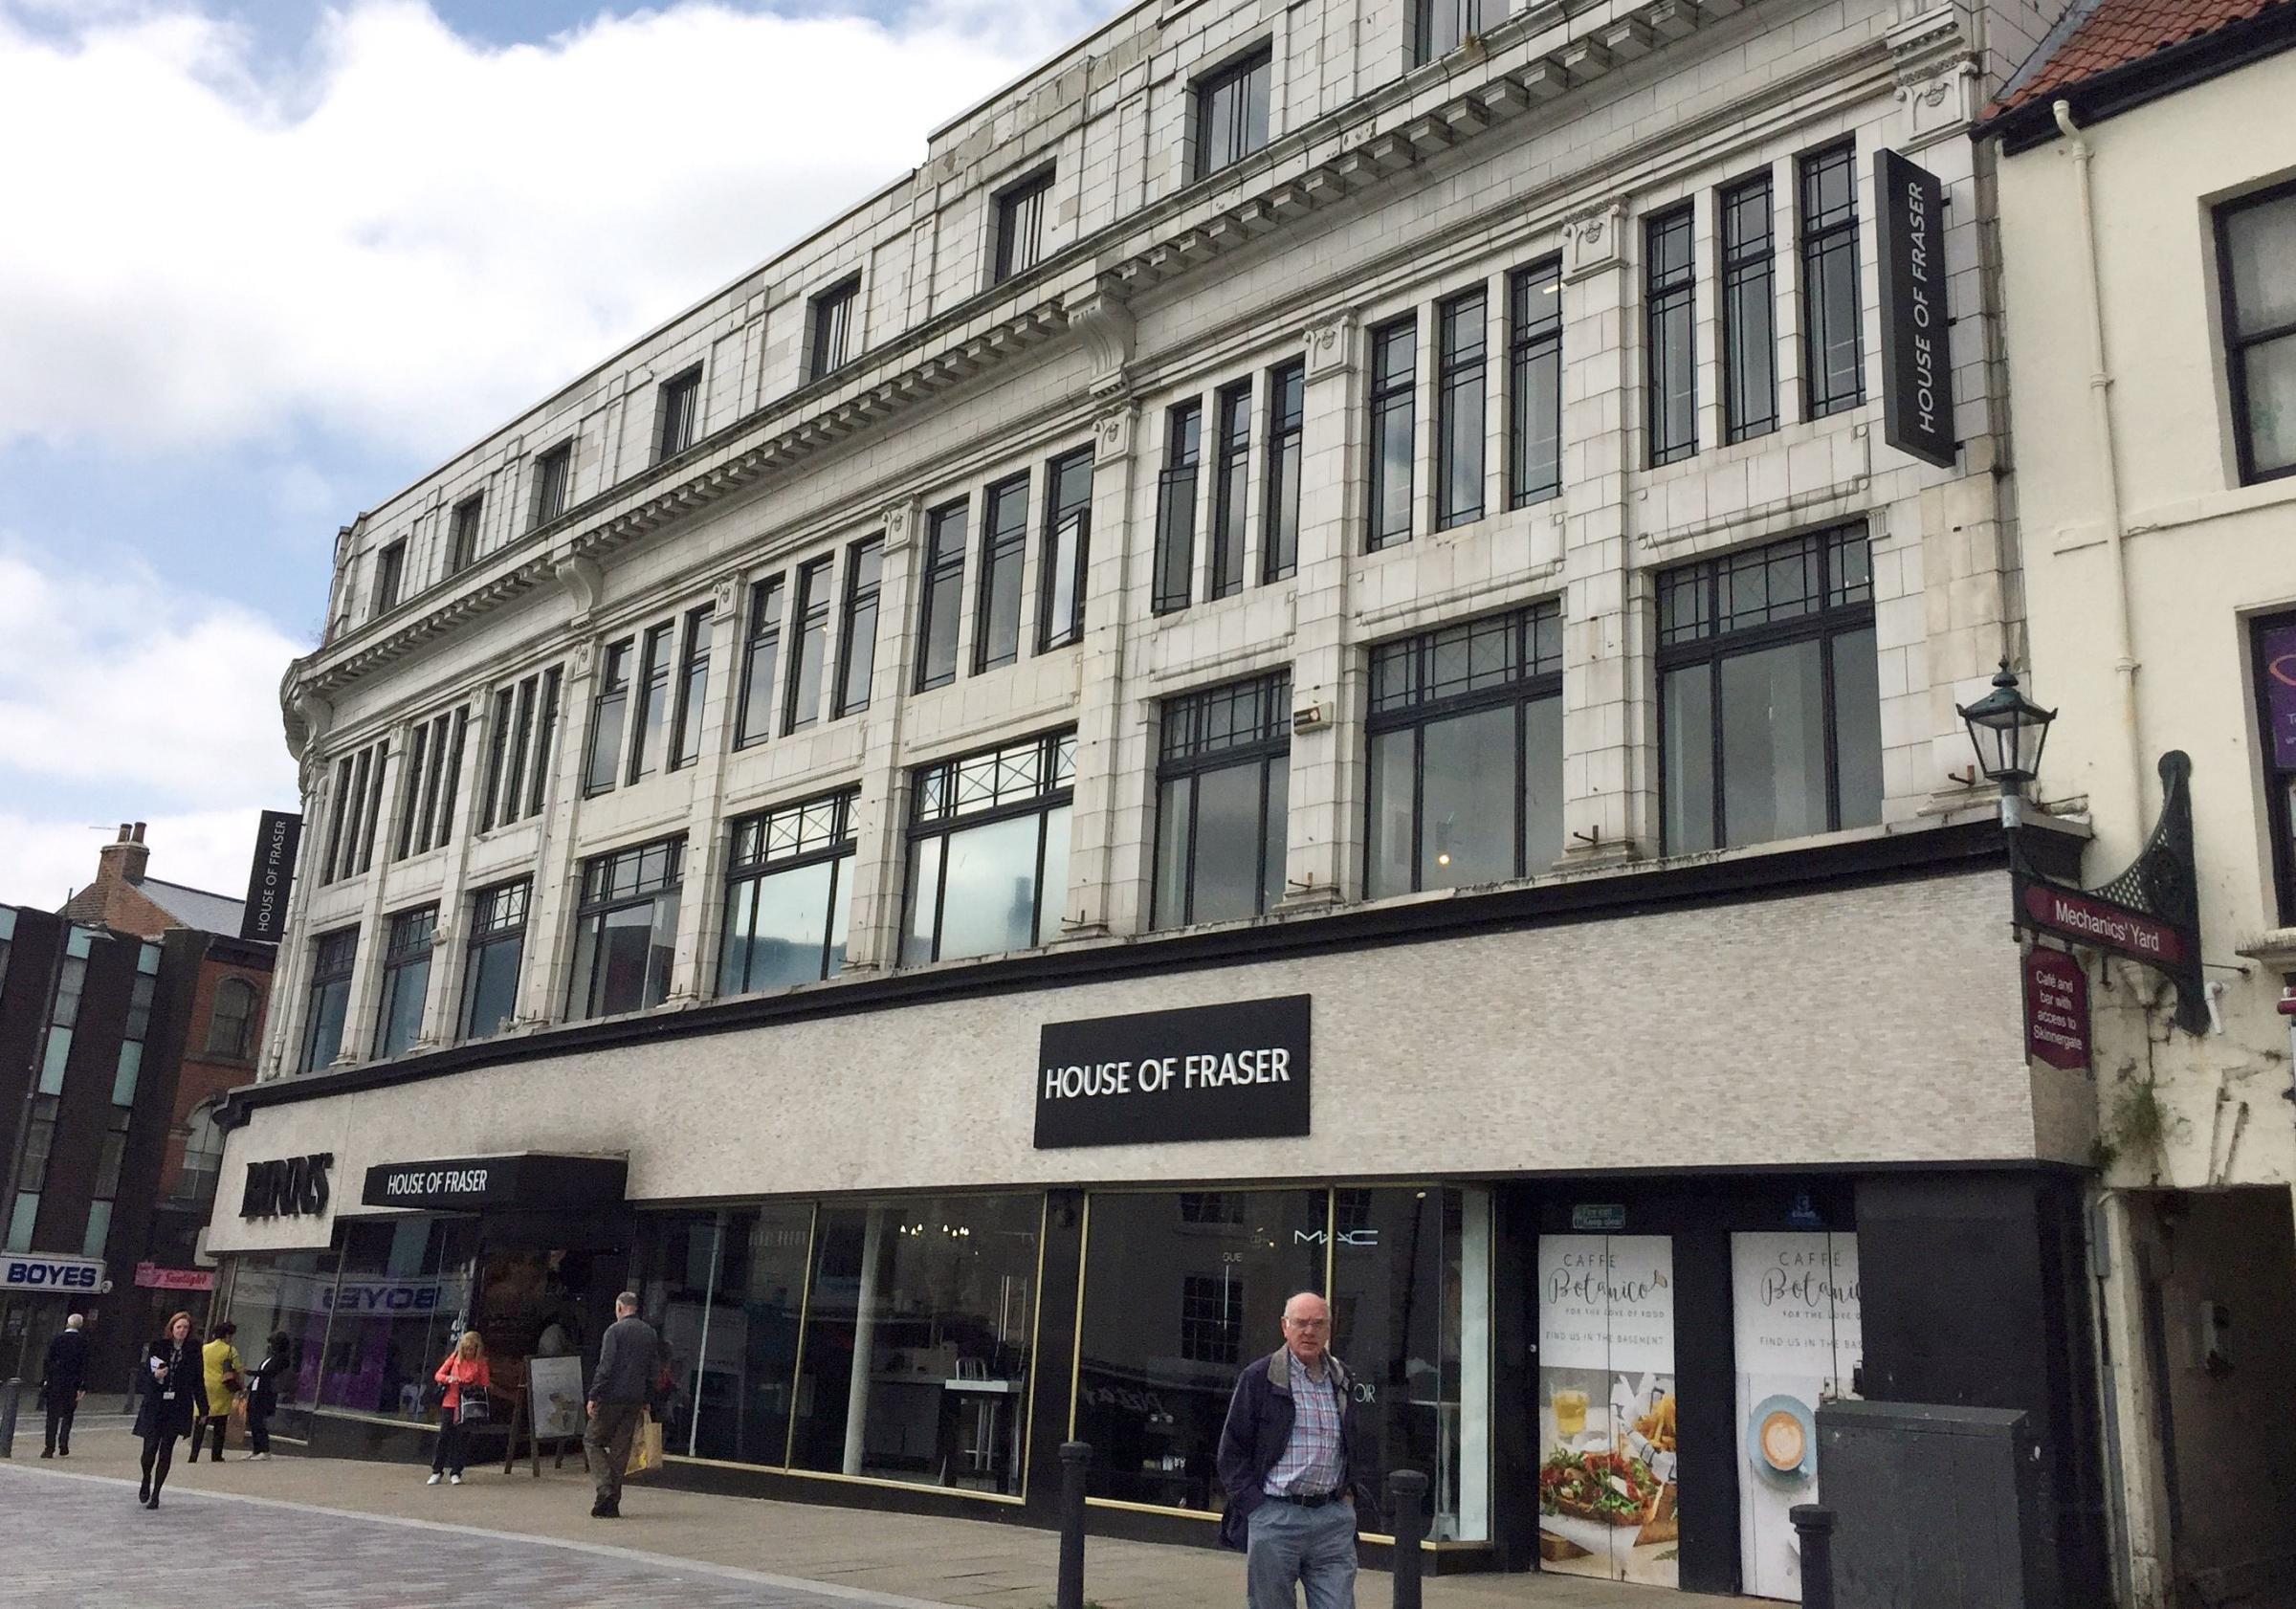 Pedestrians pass the Darlington branch of House of Fraser, which is one of those expected to close after the retailer announced plans to shut 31 of its 59 stores across the UK and Ireland as part of a rescue deal, impacting around 6,000 jobs. Picture: Tom